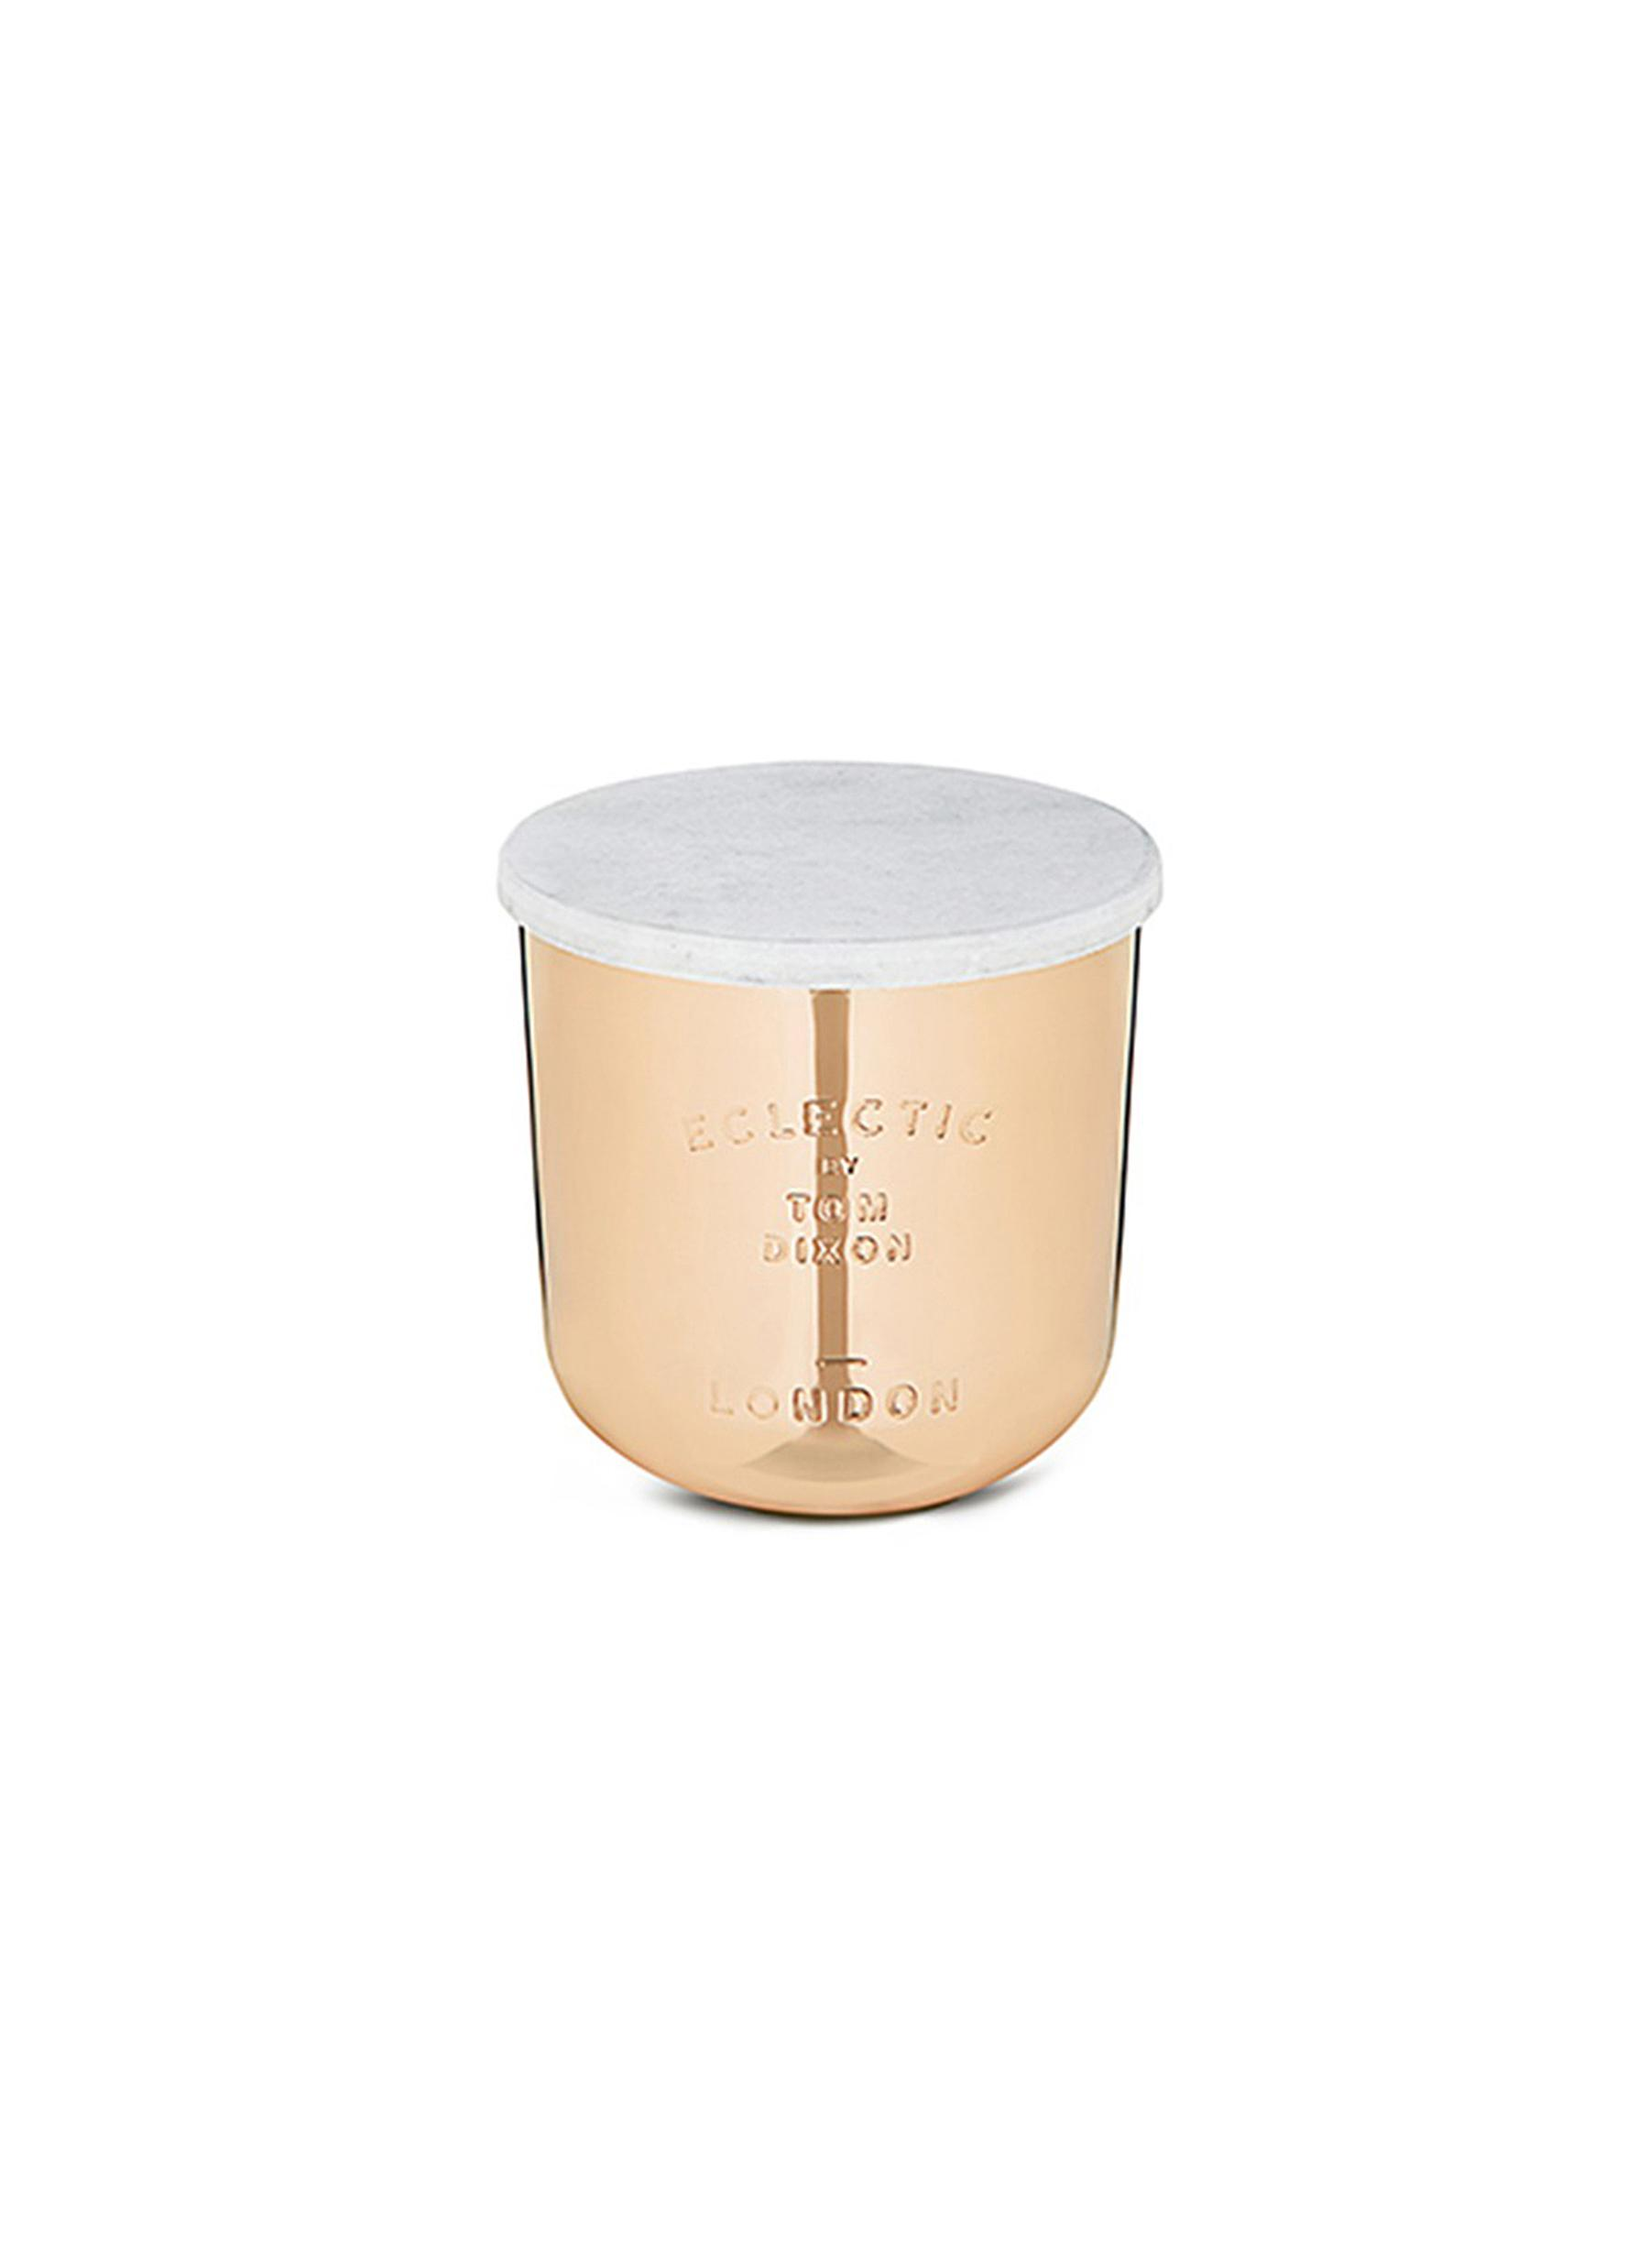 London medium scented candle by Tom Dixon